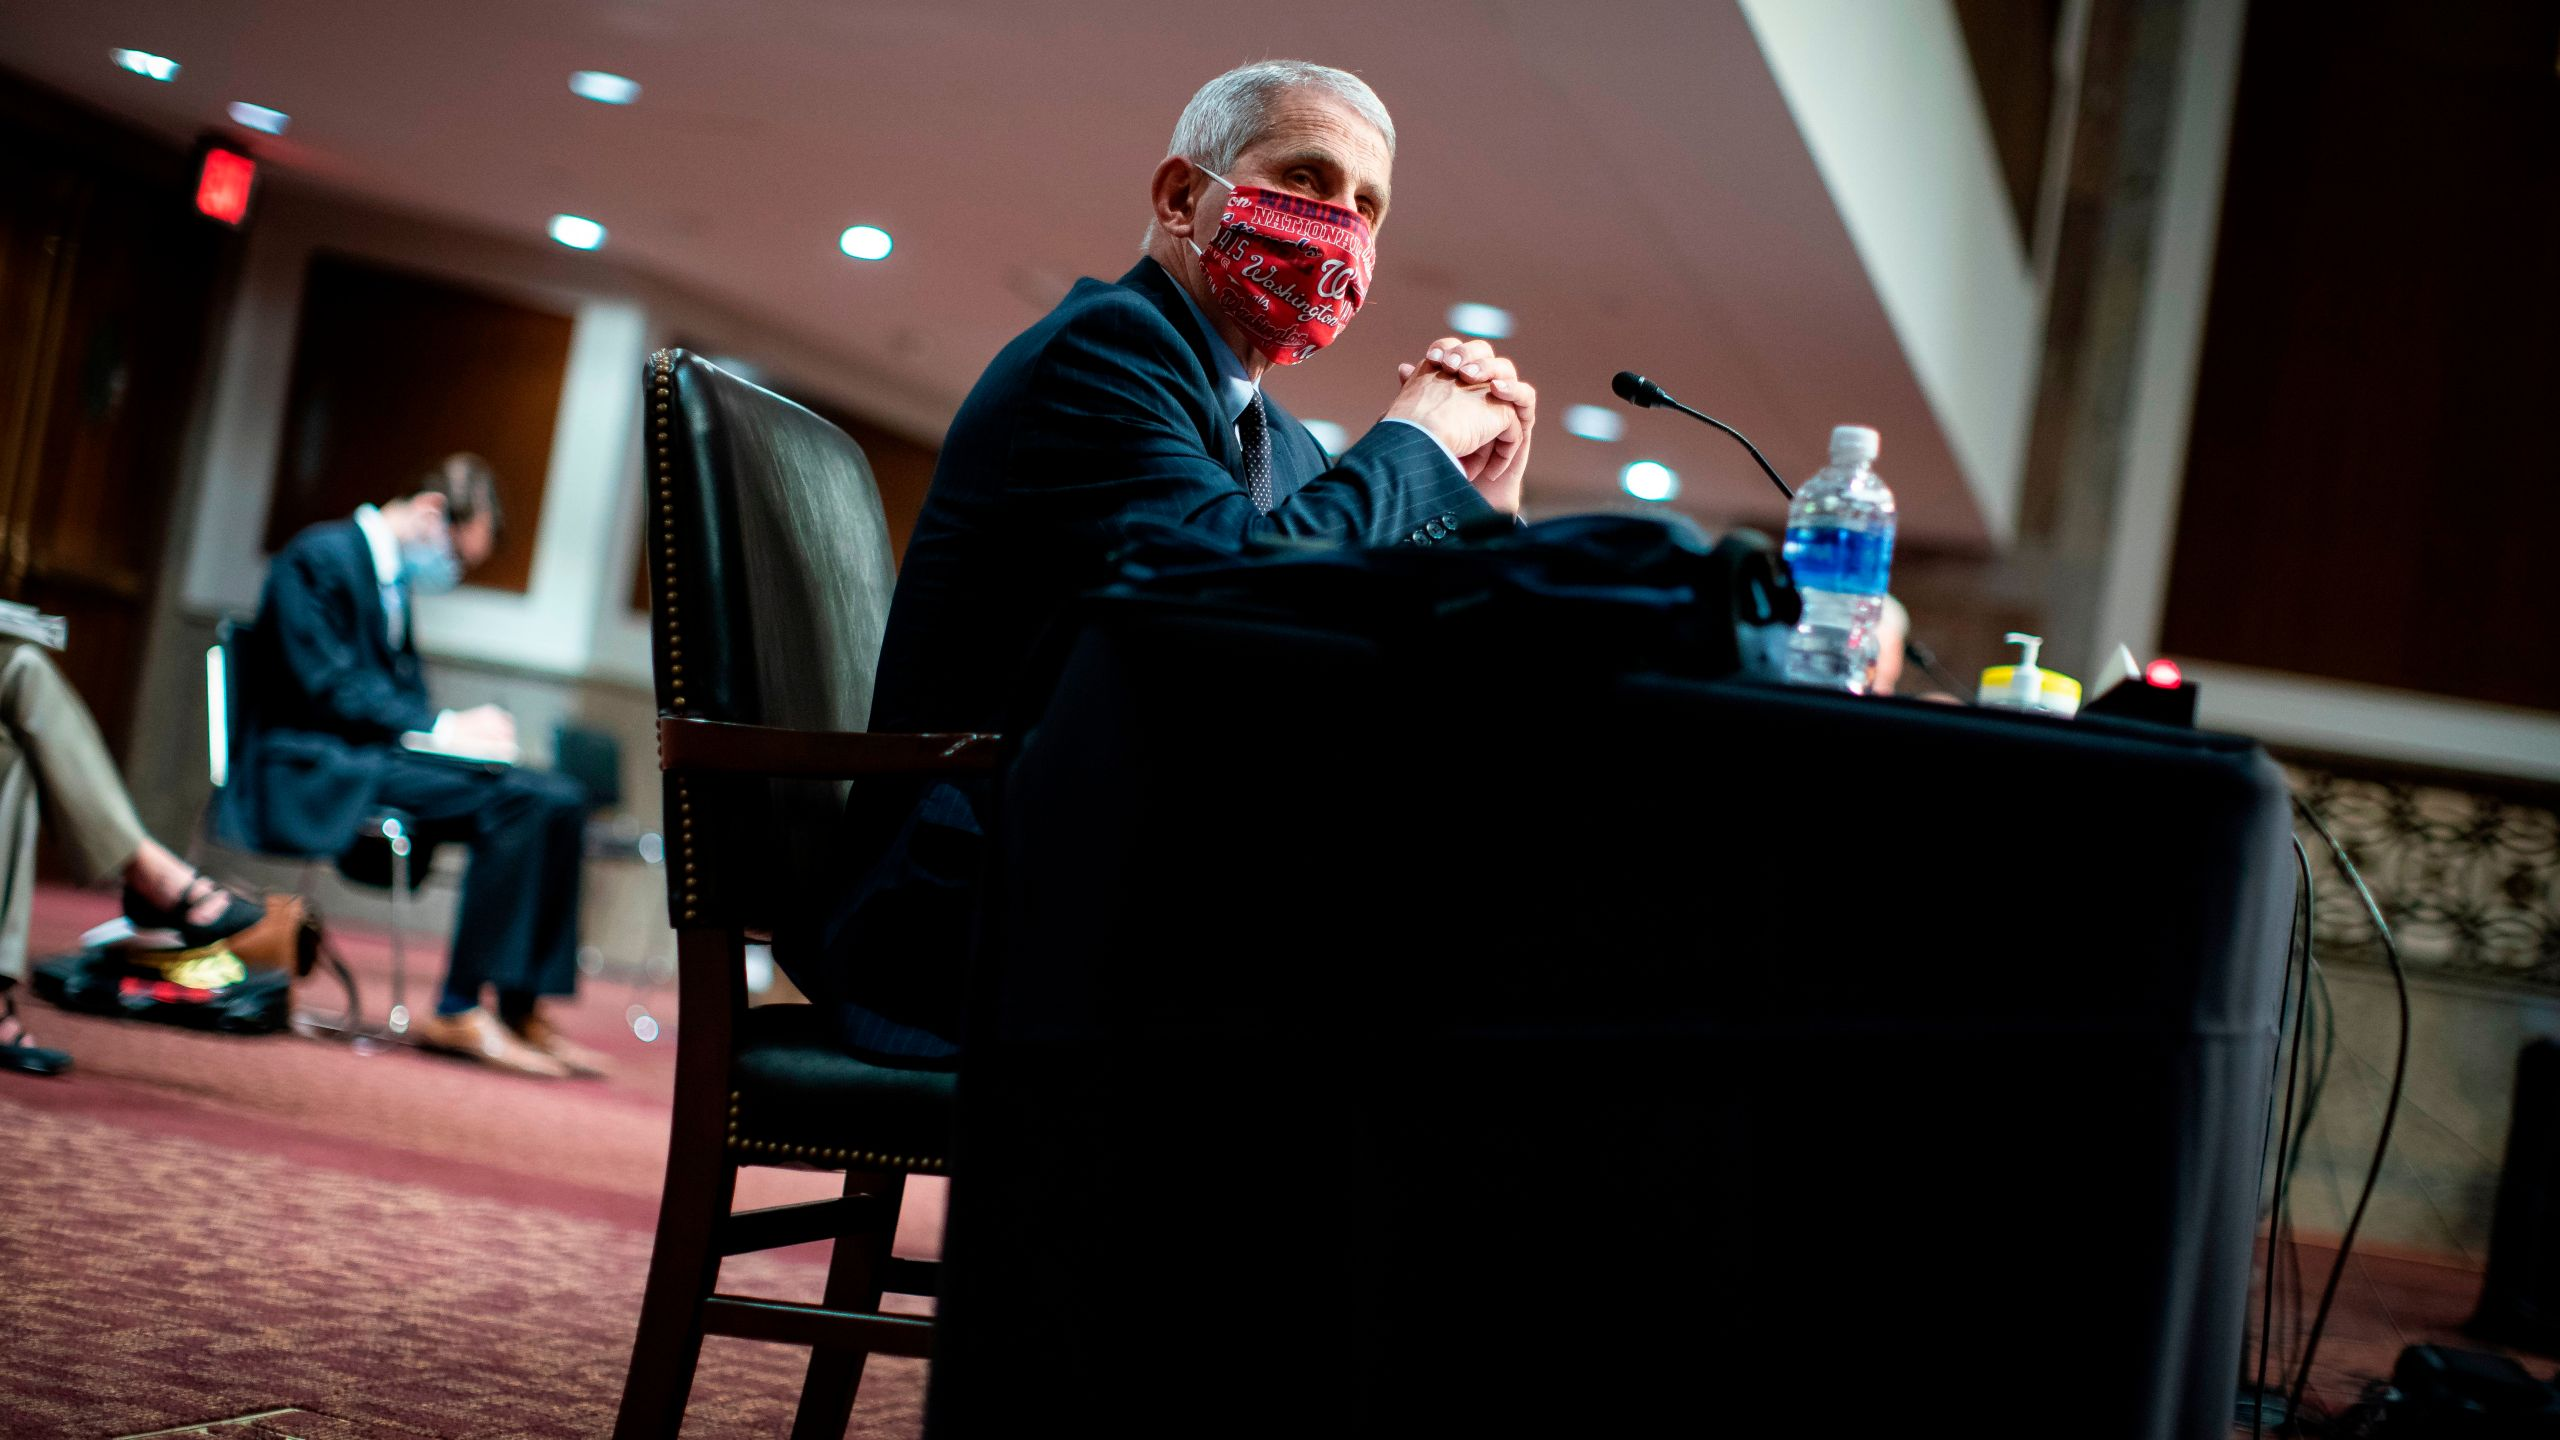 Anthony Fauci, director of the National Institute of Allergy and Infectious Diseases, listens during a Senate Health, Education, Labor and Pensions Committee hearing in Washington, DC, June 30, 2020. (AL DRAGO/POOL/AFP via Getty Images)